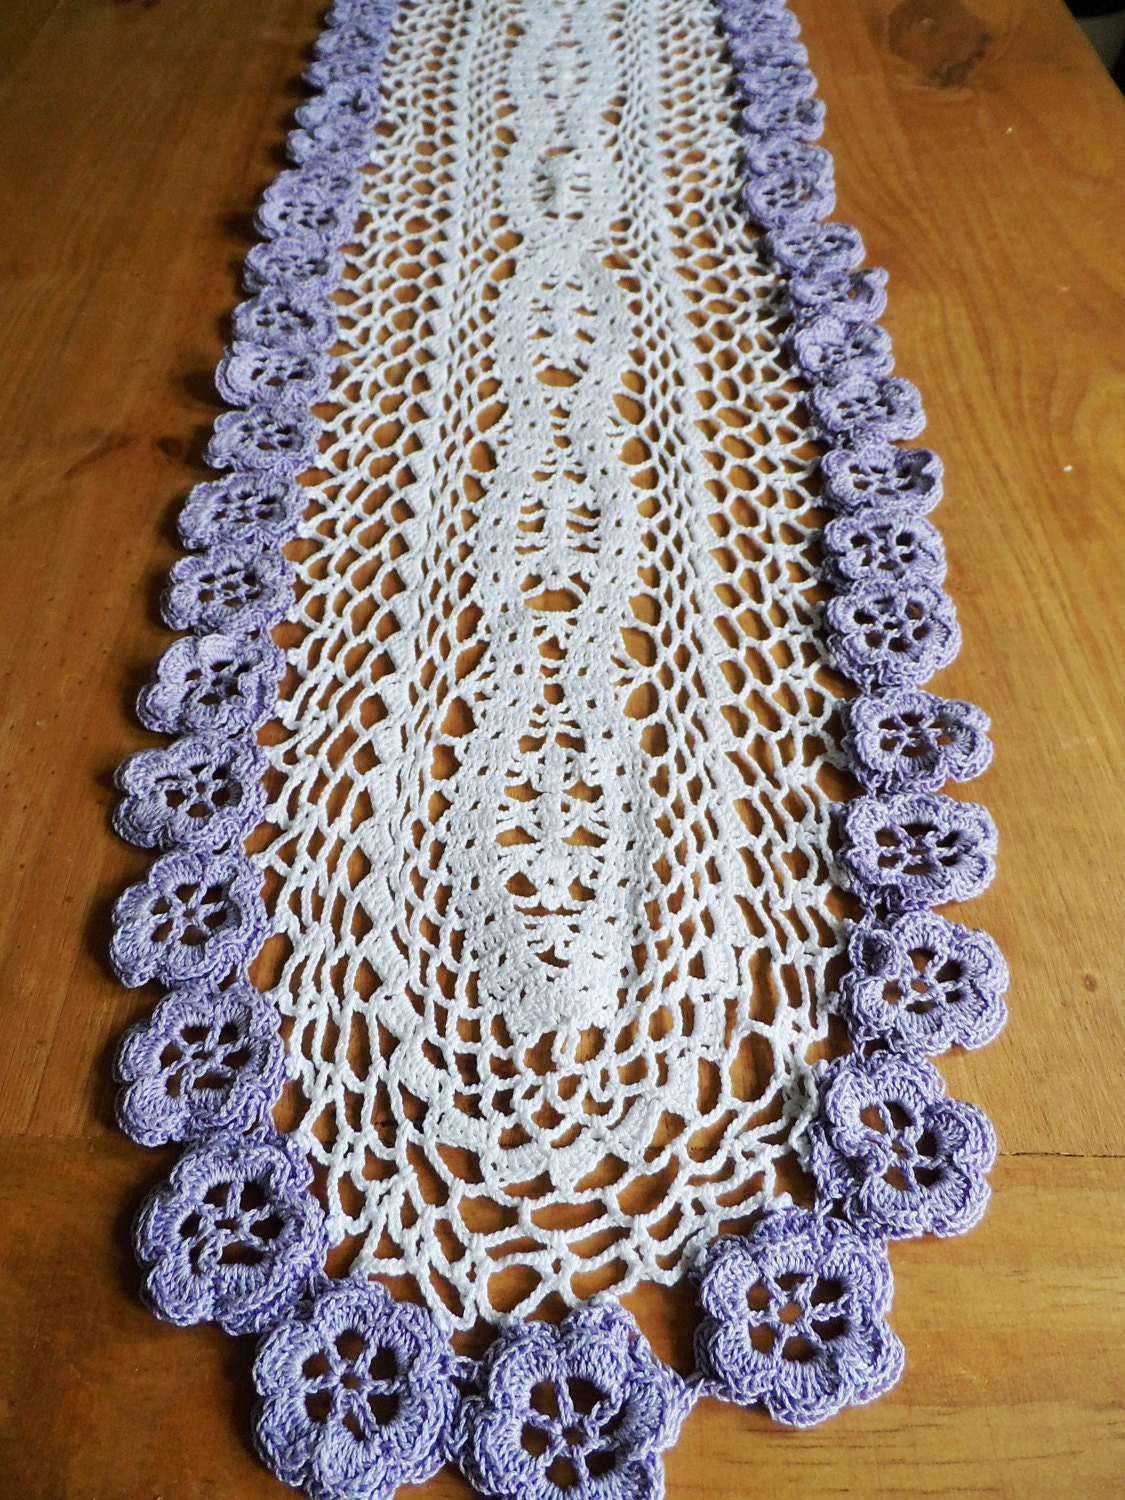 Crochet Table Runner : Crochet runner, crocheted table runner, crochet centerpiece, crochet ...